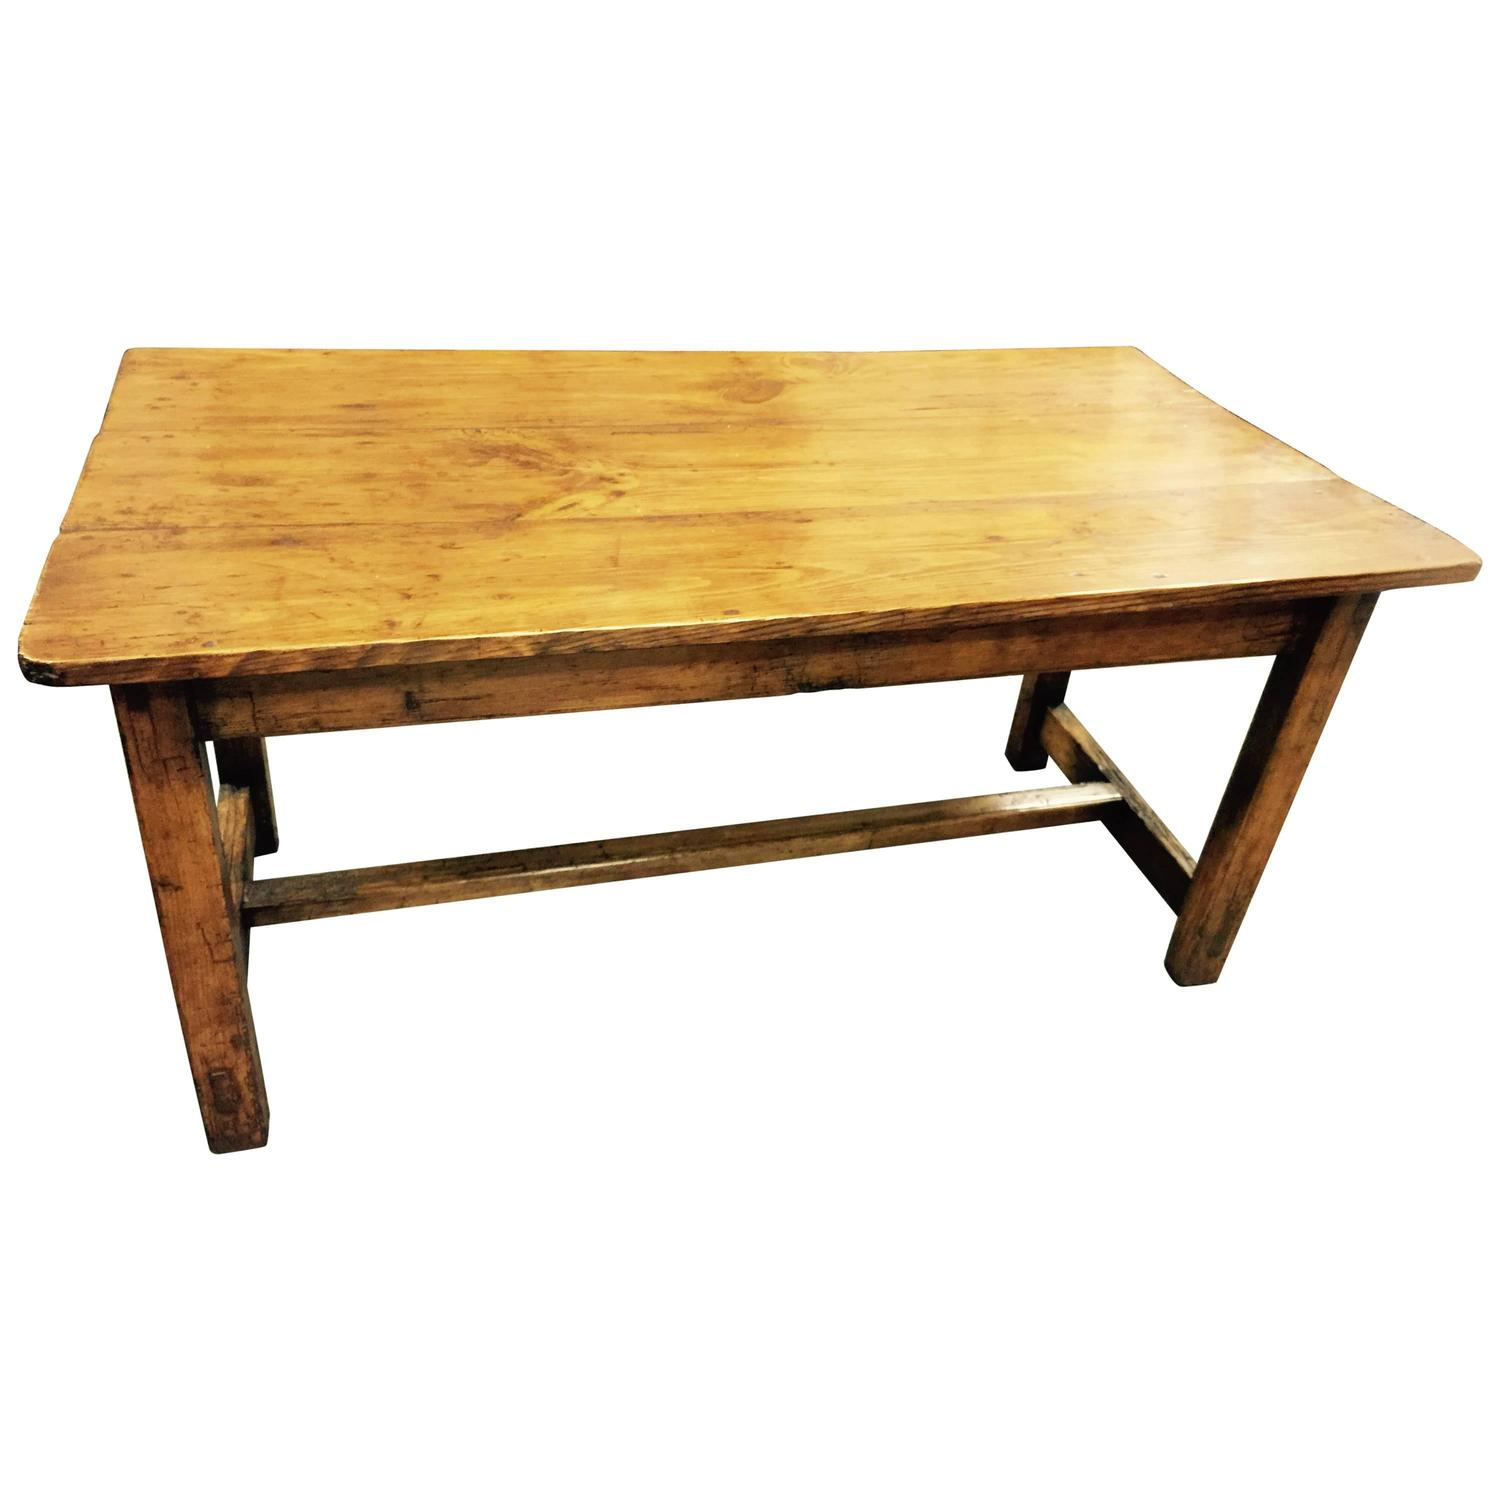 Early 19th century pine farm coffee table for sale at 1stdibs for Pine farmhouse coffee table